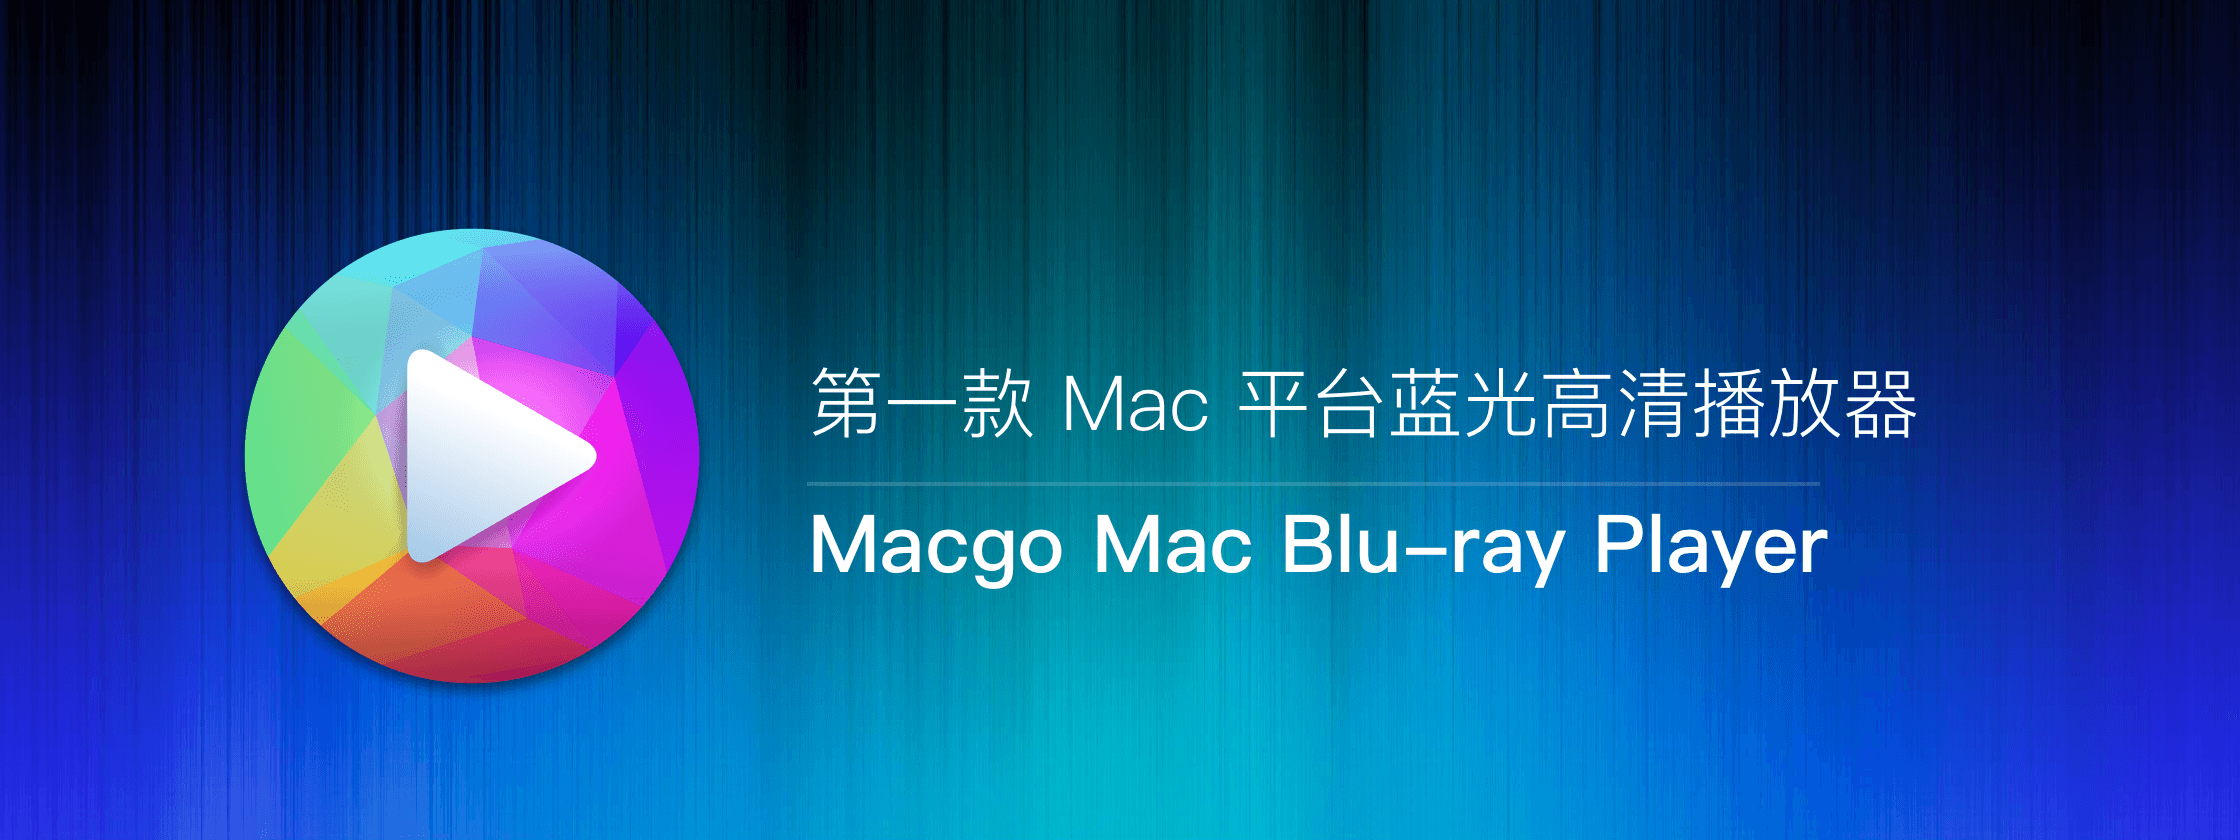 Macgo Mac Blu-ray Player – 首款跨平台蓝光高清播放器